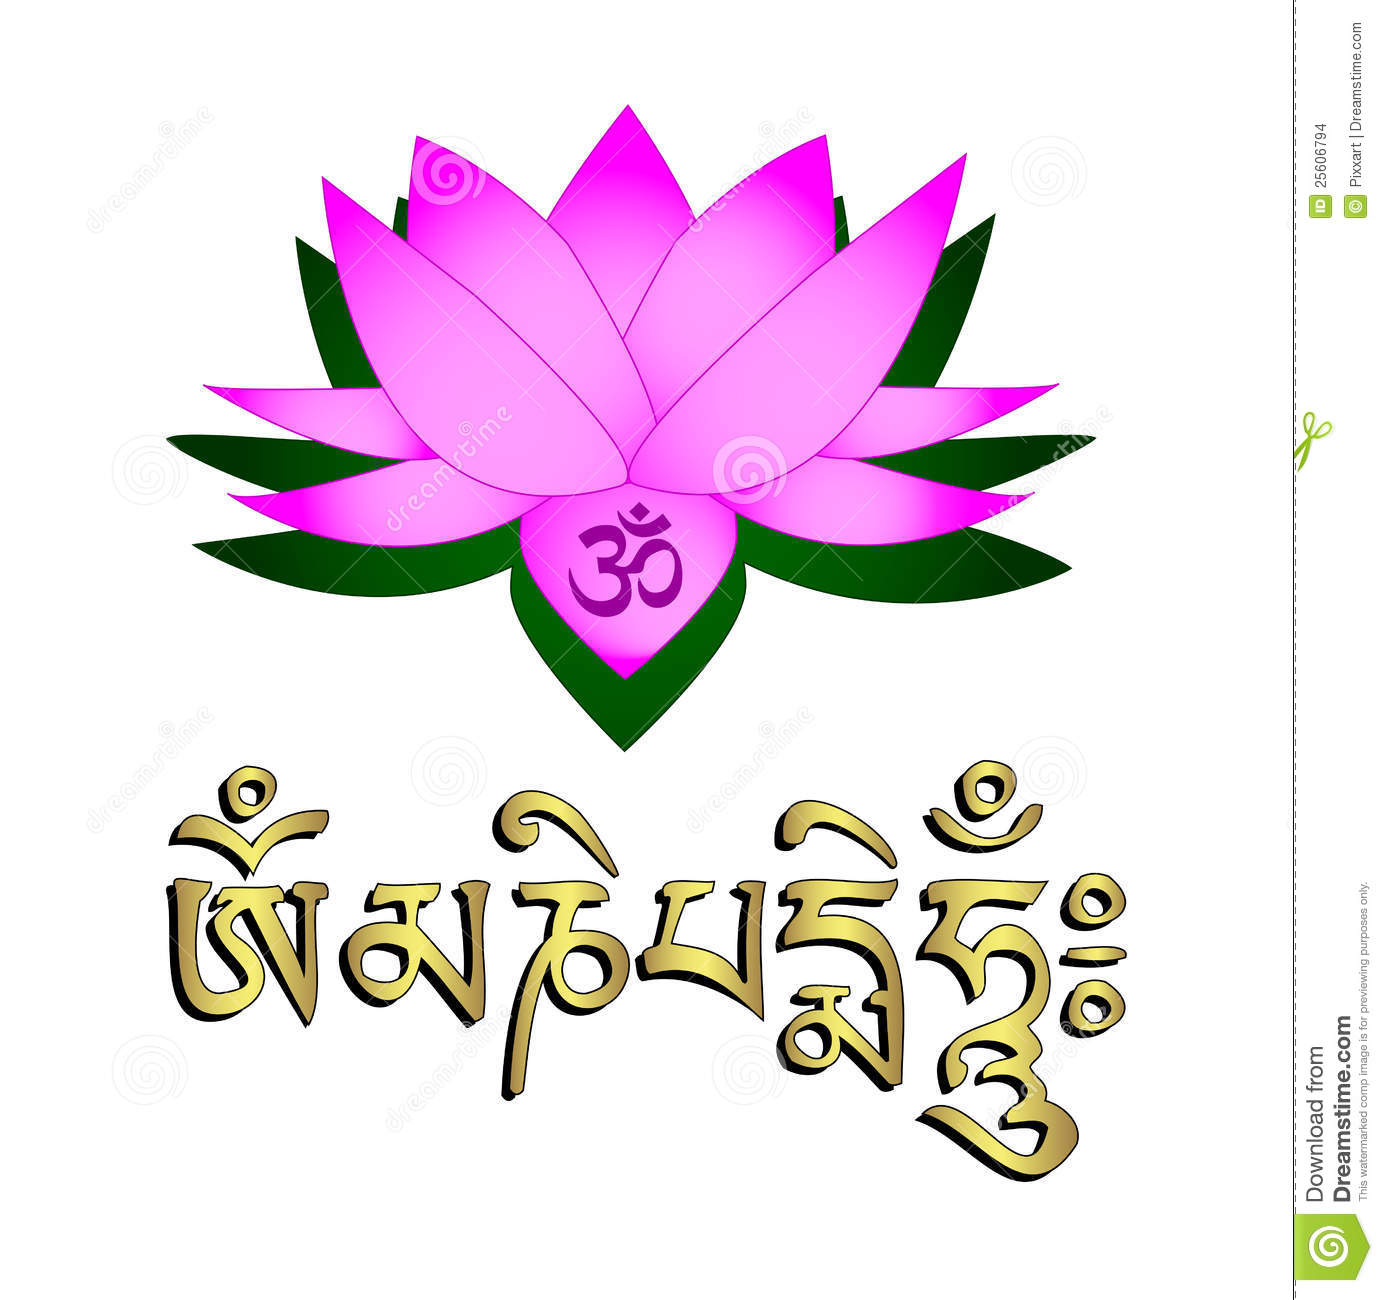 Mantra stock illustrations 4005 mantra stock illustrations lotus flower om symbol and mantra om mani padme hum stock images izmirmasajfo Image collections